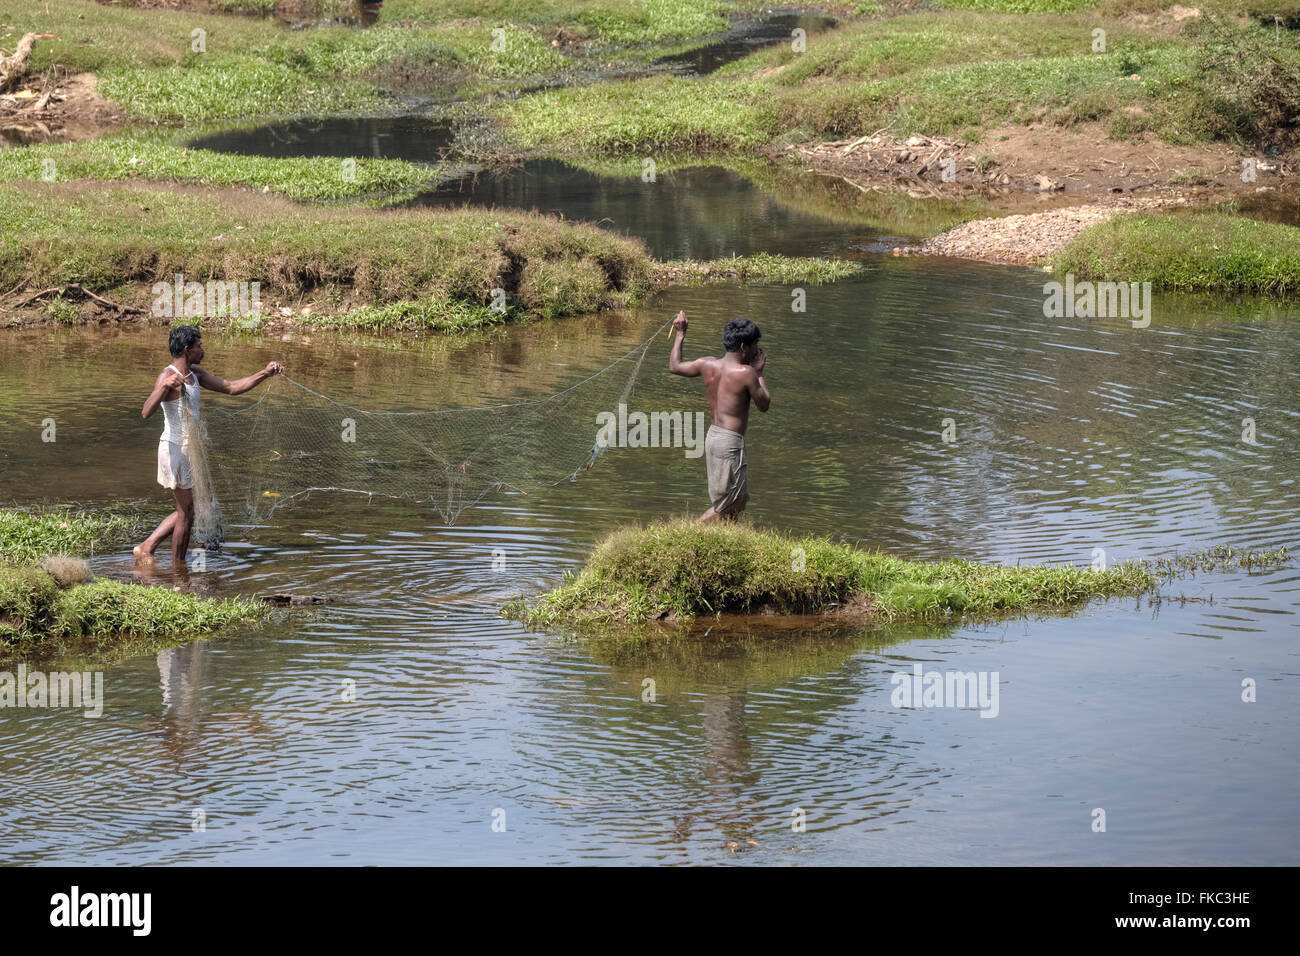 men fishing with a net in a river in Kerala, South India - Stock Image